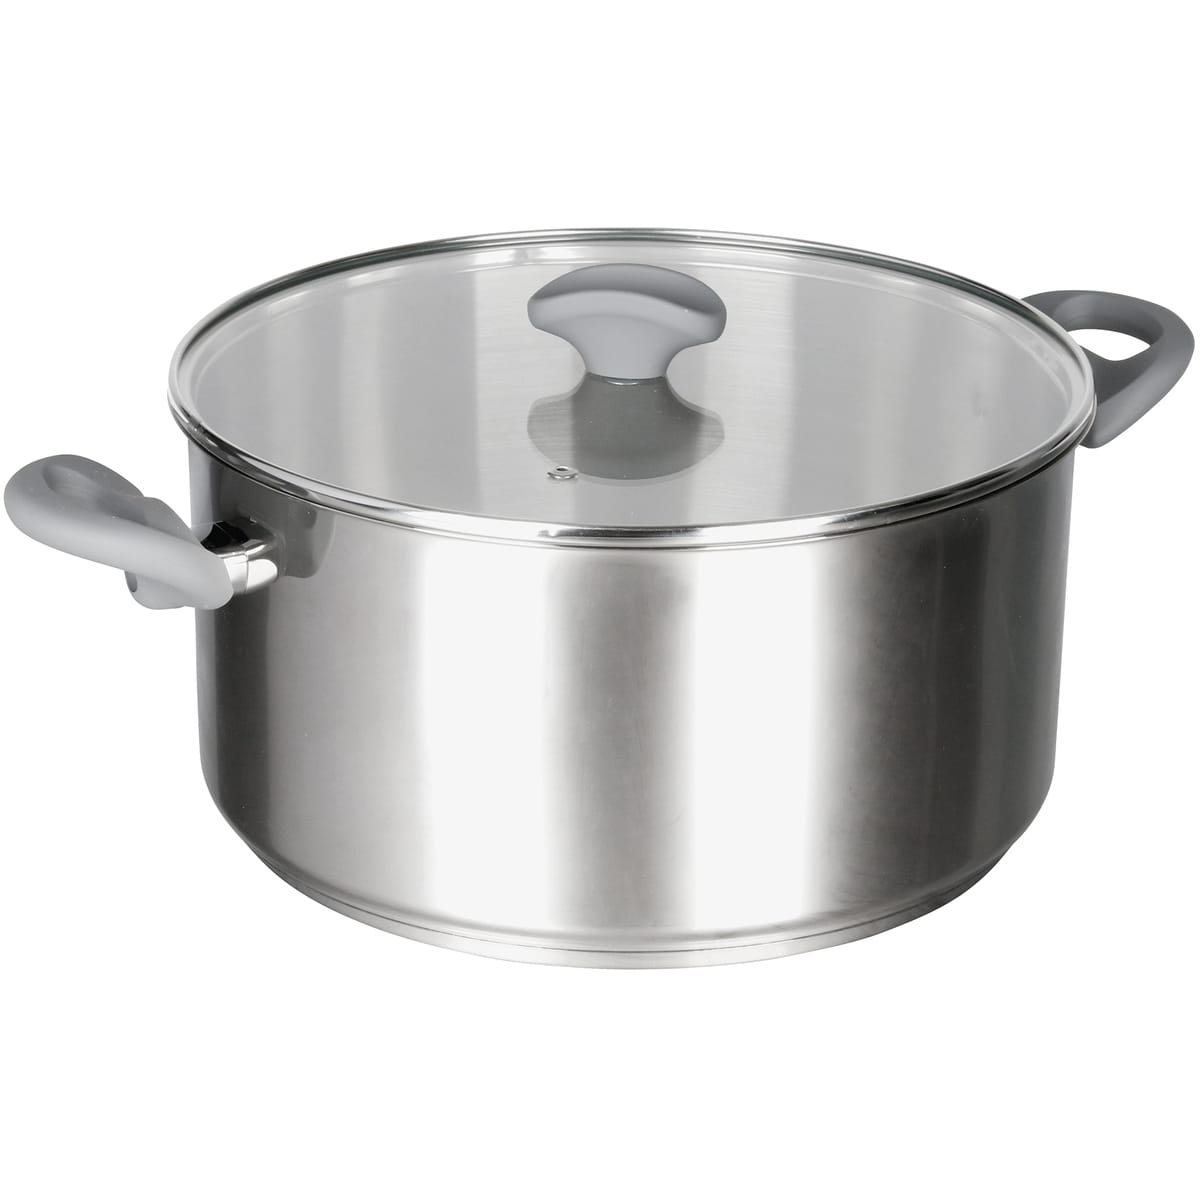 stainless steel casserole with side handles and knob by la termoplastic fbm